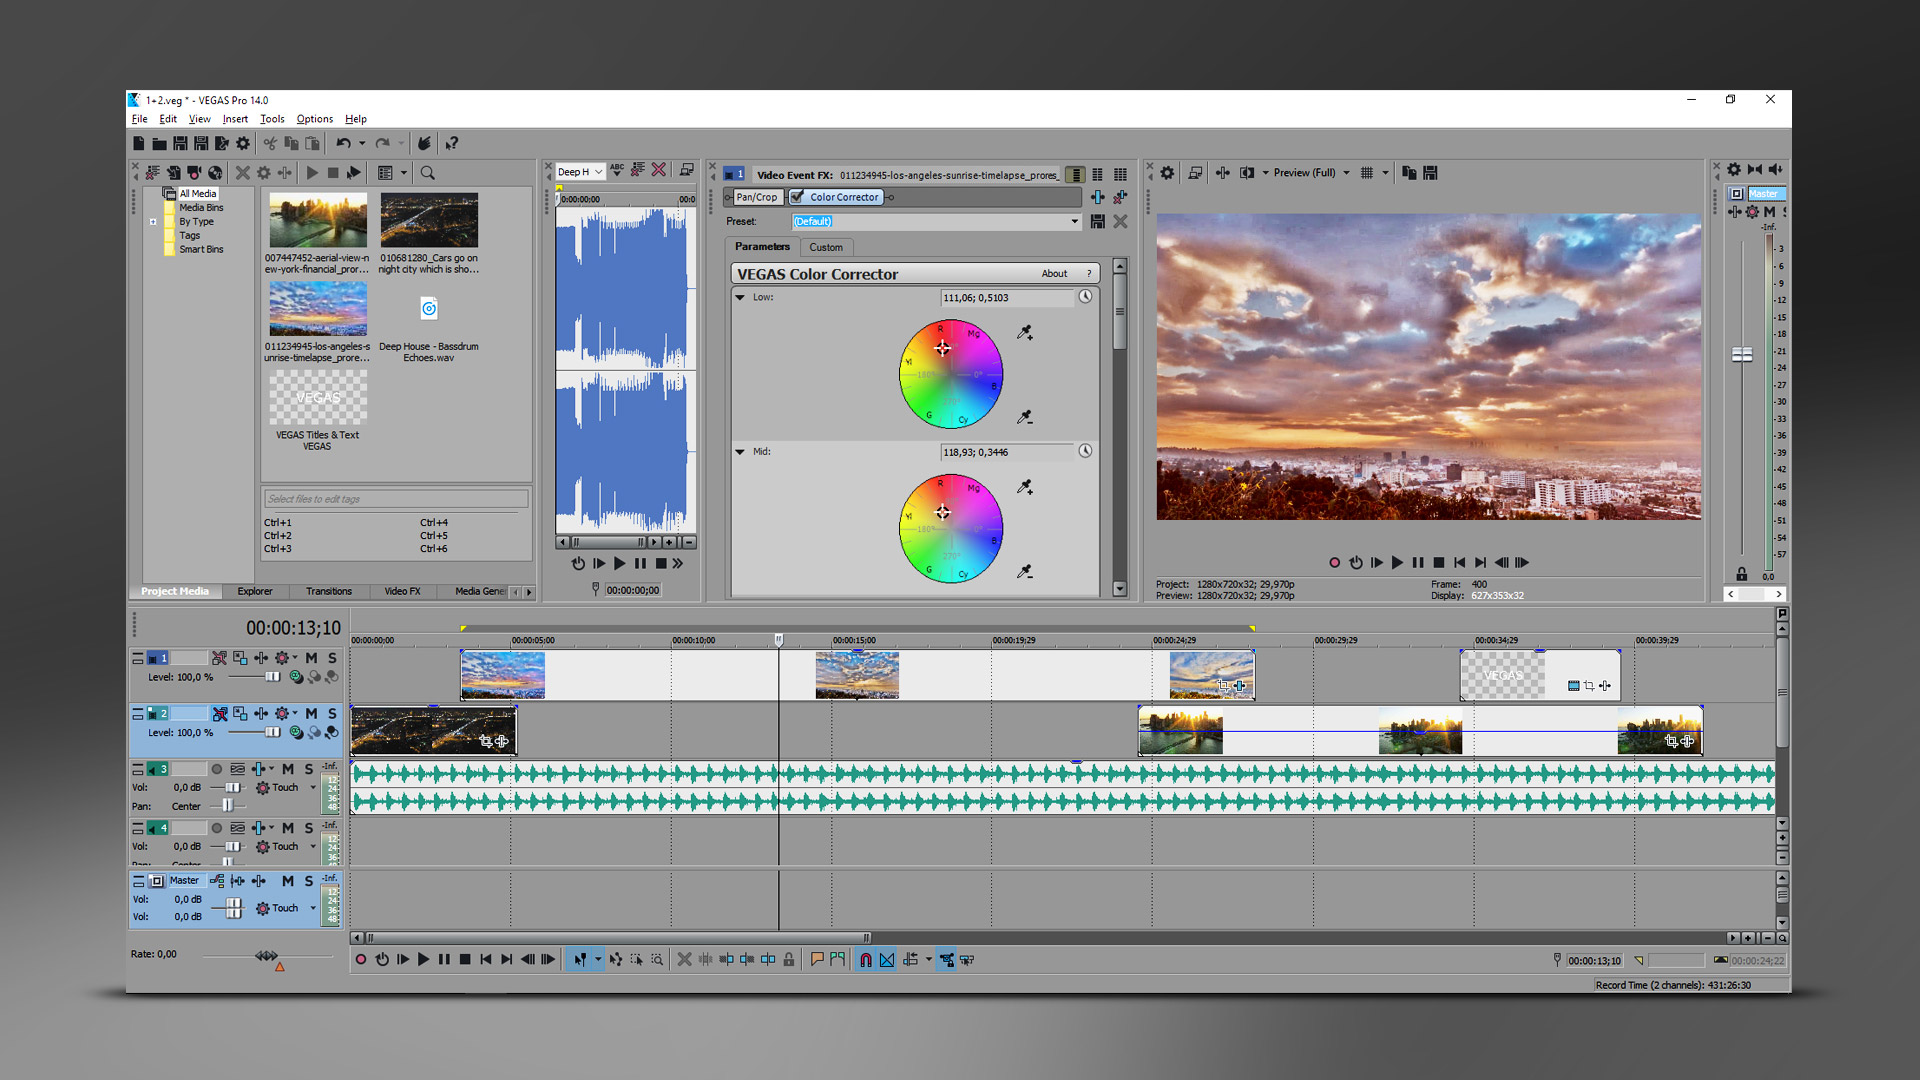 sony vegas pro 10 free crak and keygen